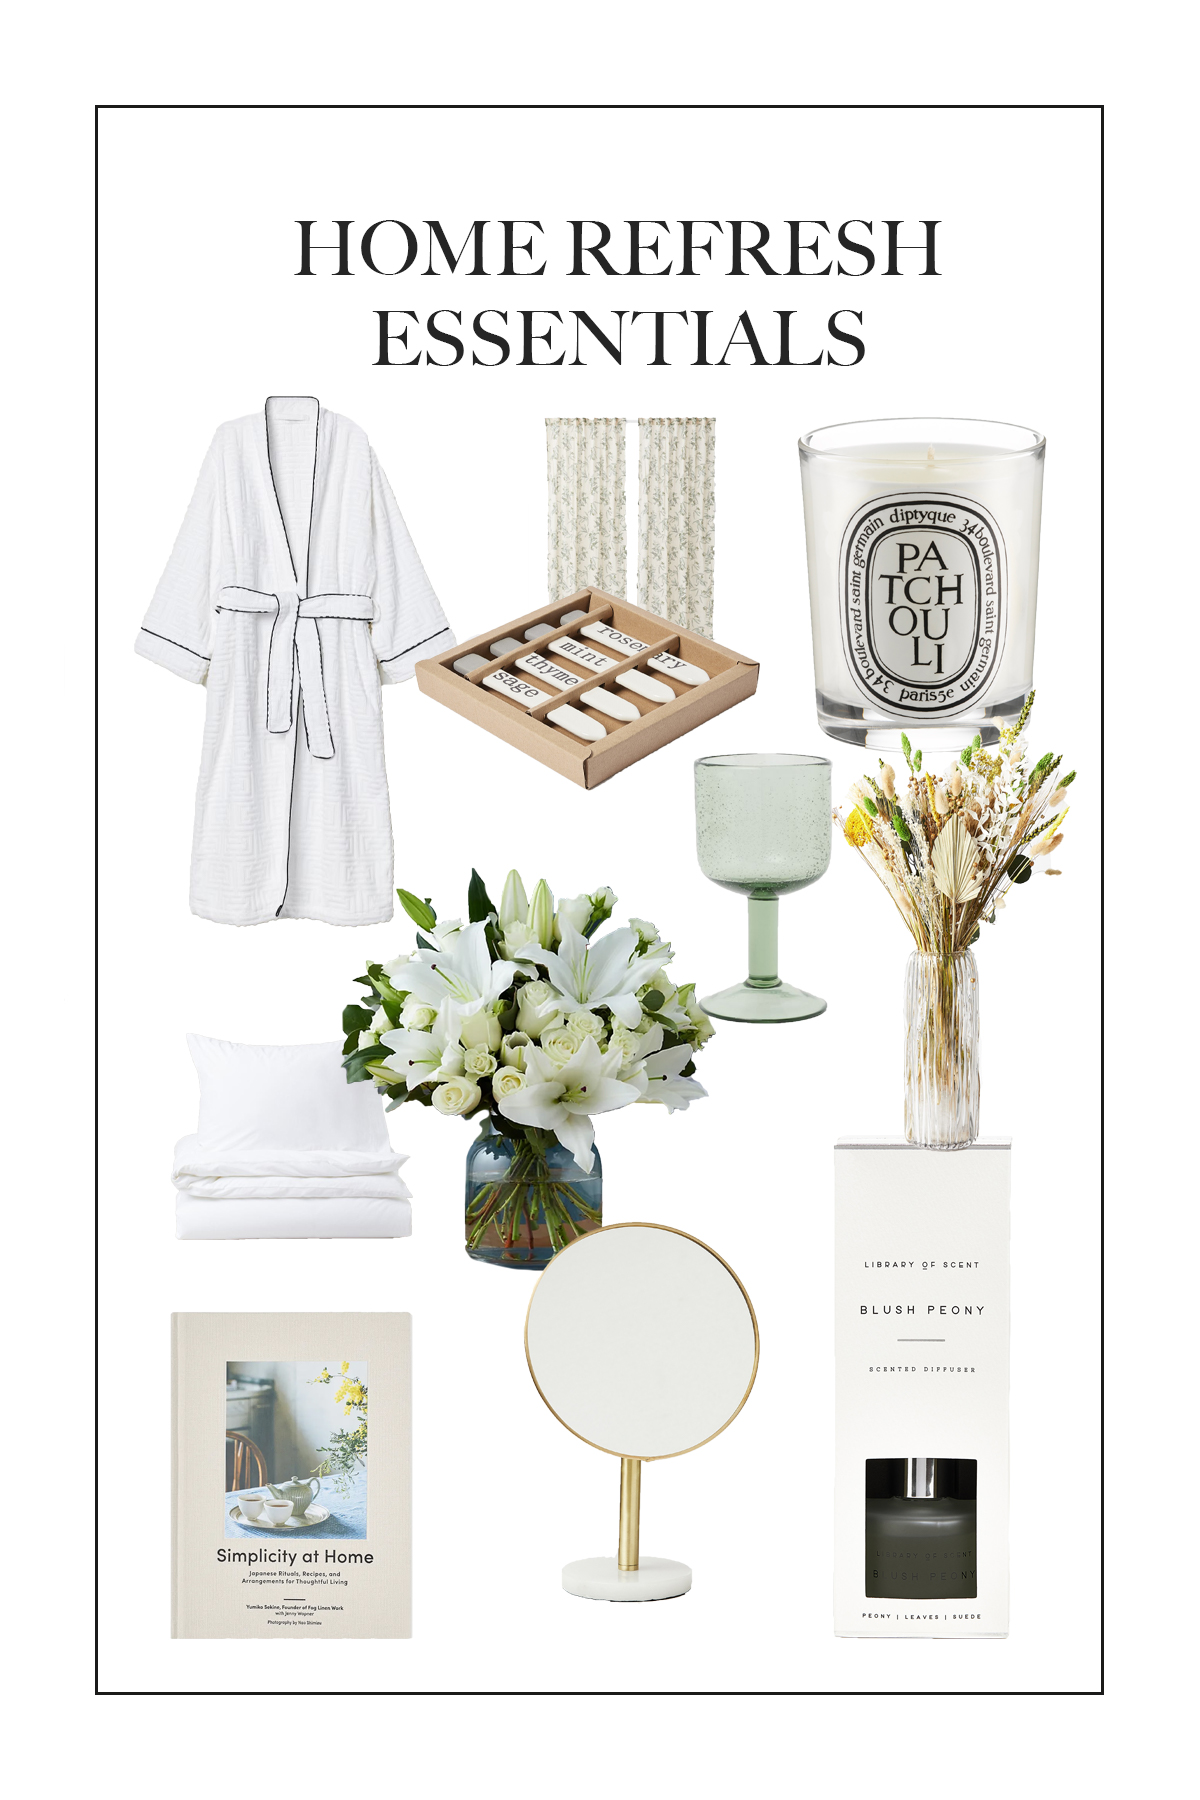 Some home refresh essentials to consider this summer when thinking about having a change...